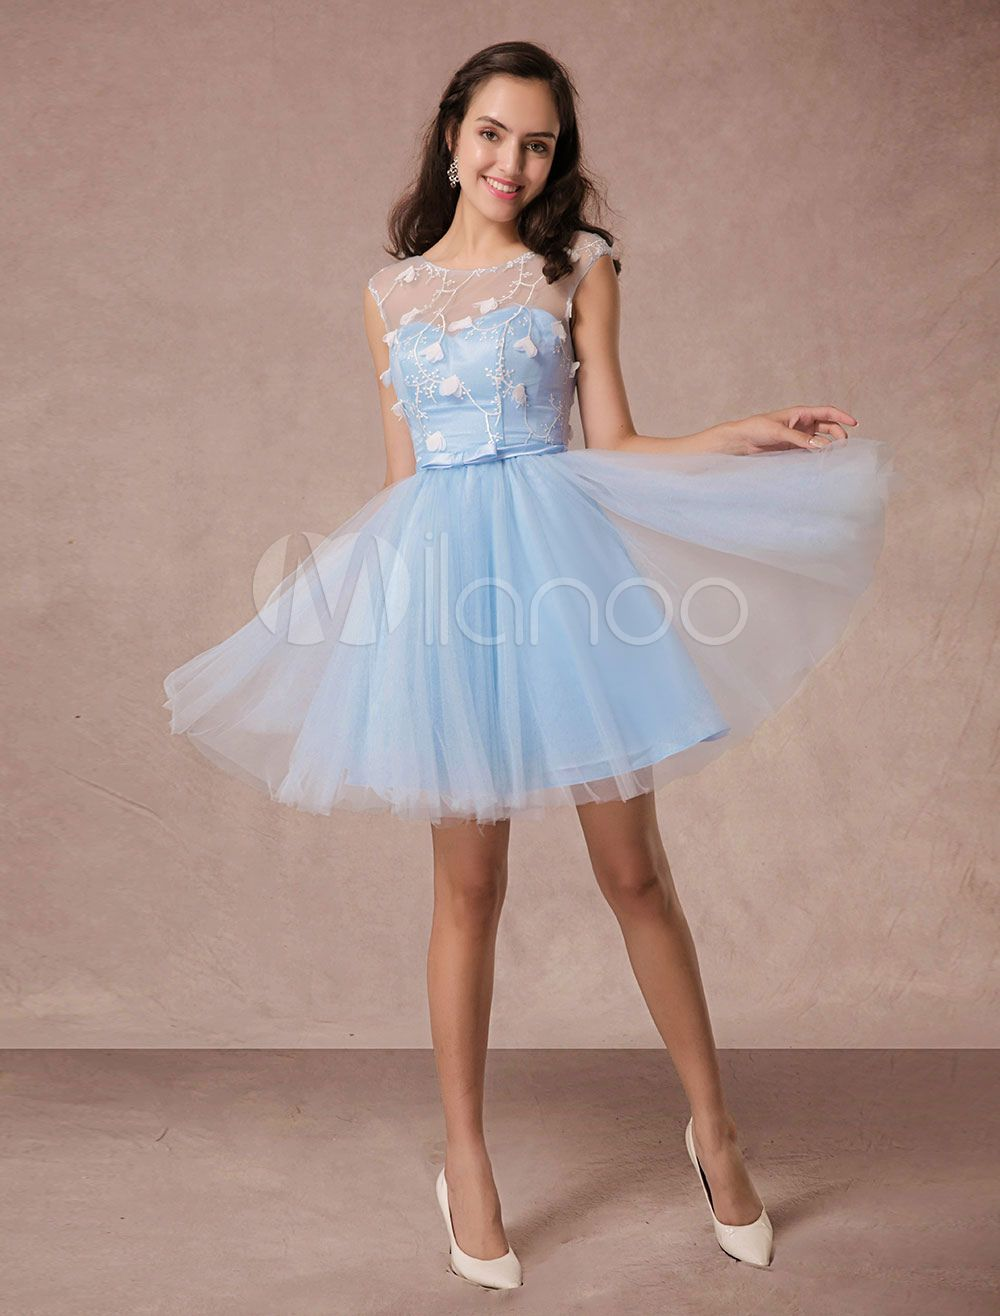 Short prom dress blue lace homecoming dress backless flower applique